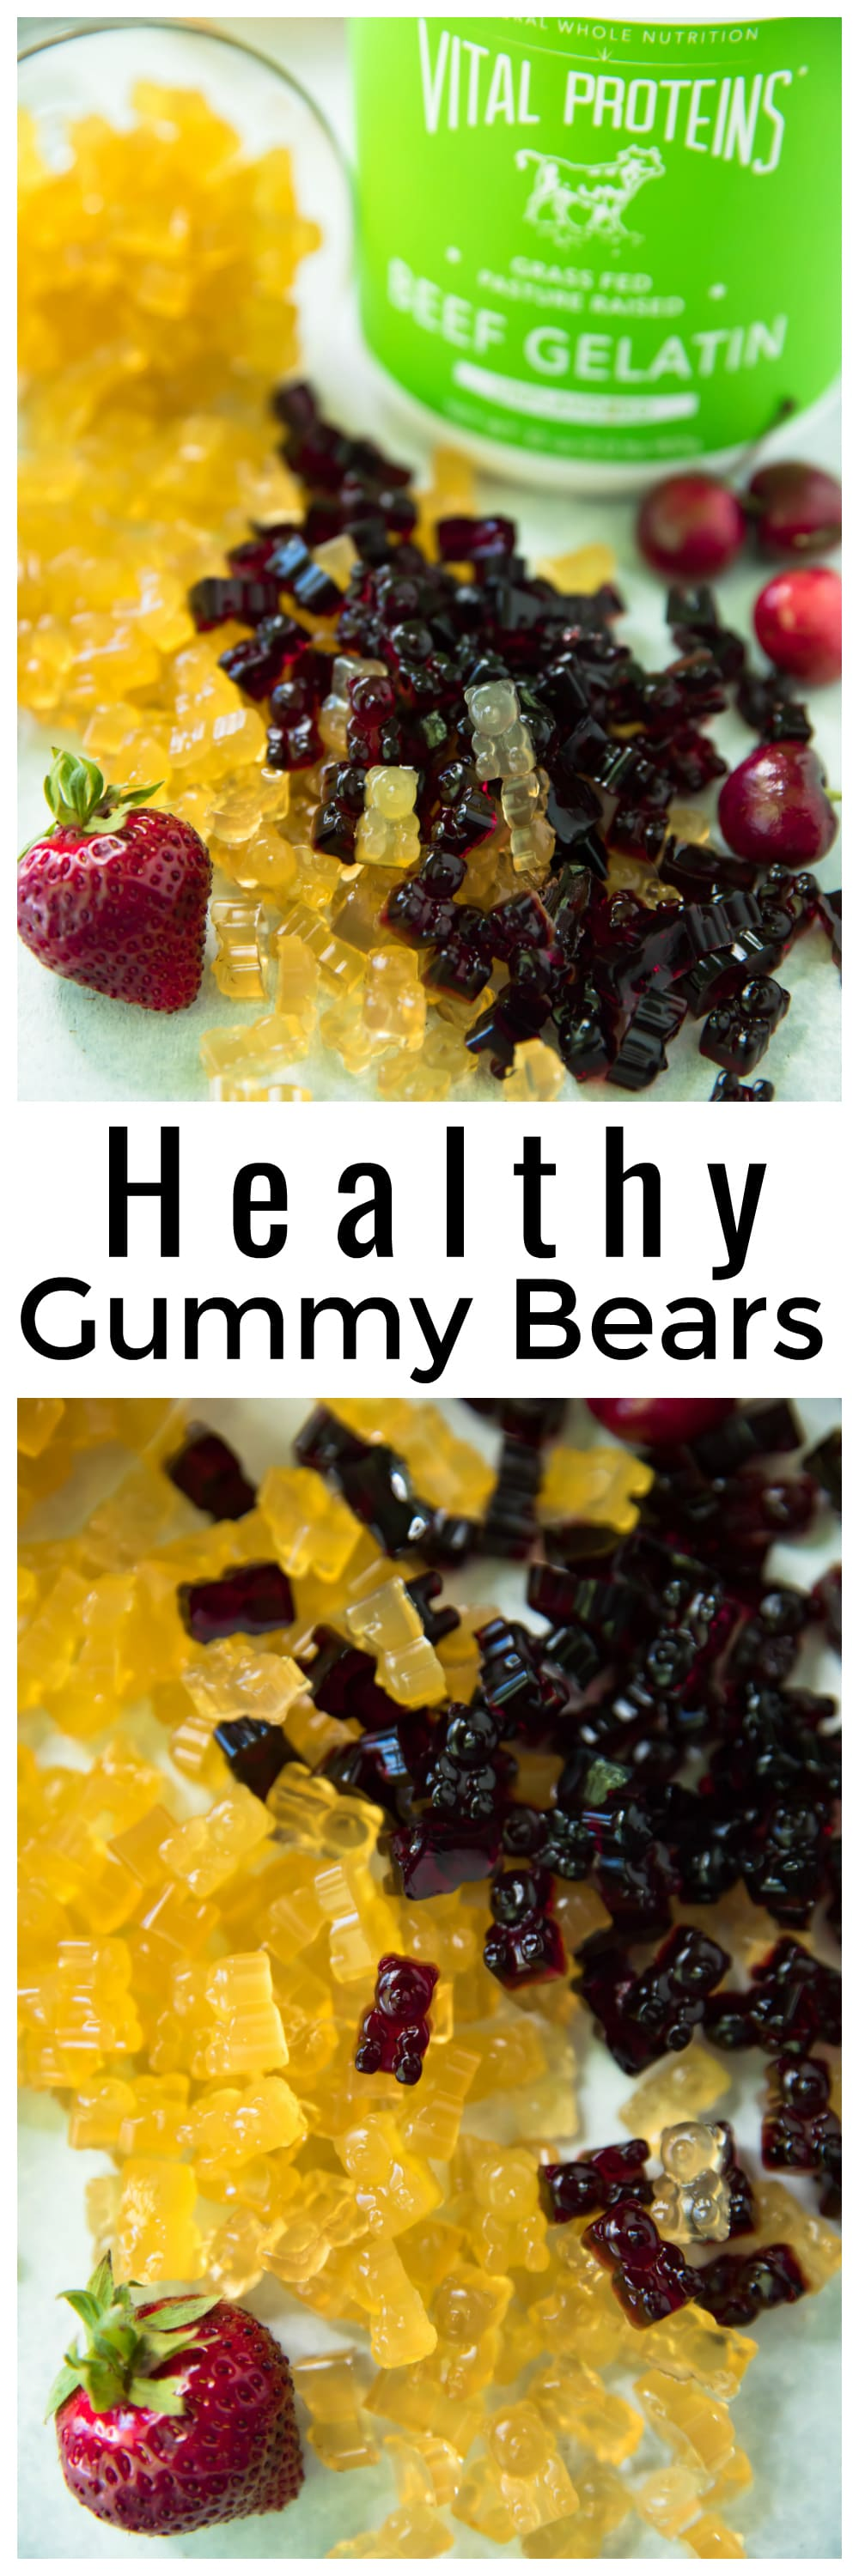 These Healthy Gummy Bears couldn't be easier to make! The three delicious options, Apple, Strawberry Lemonade and Tart Cherry, are flavored with natural fruit juice and gut-healing gelatin for a superfood boost.